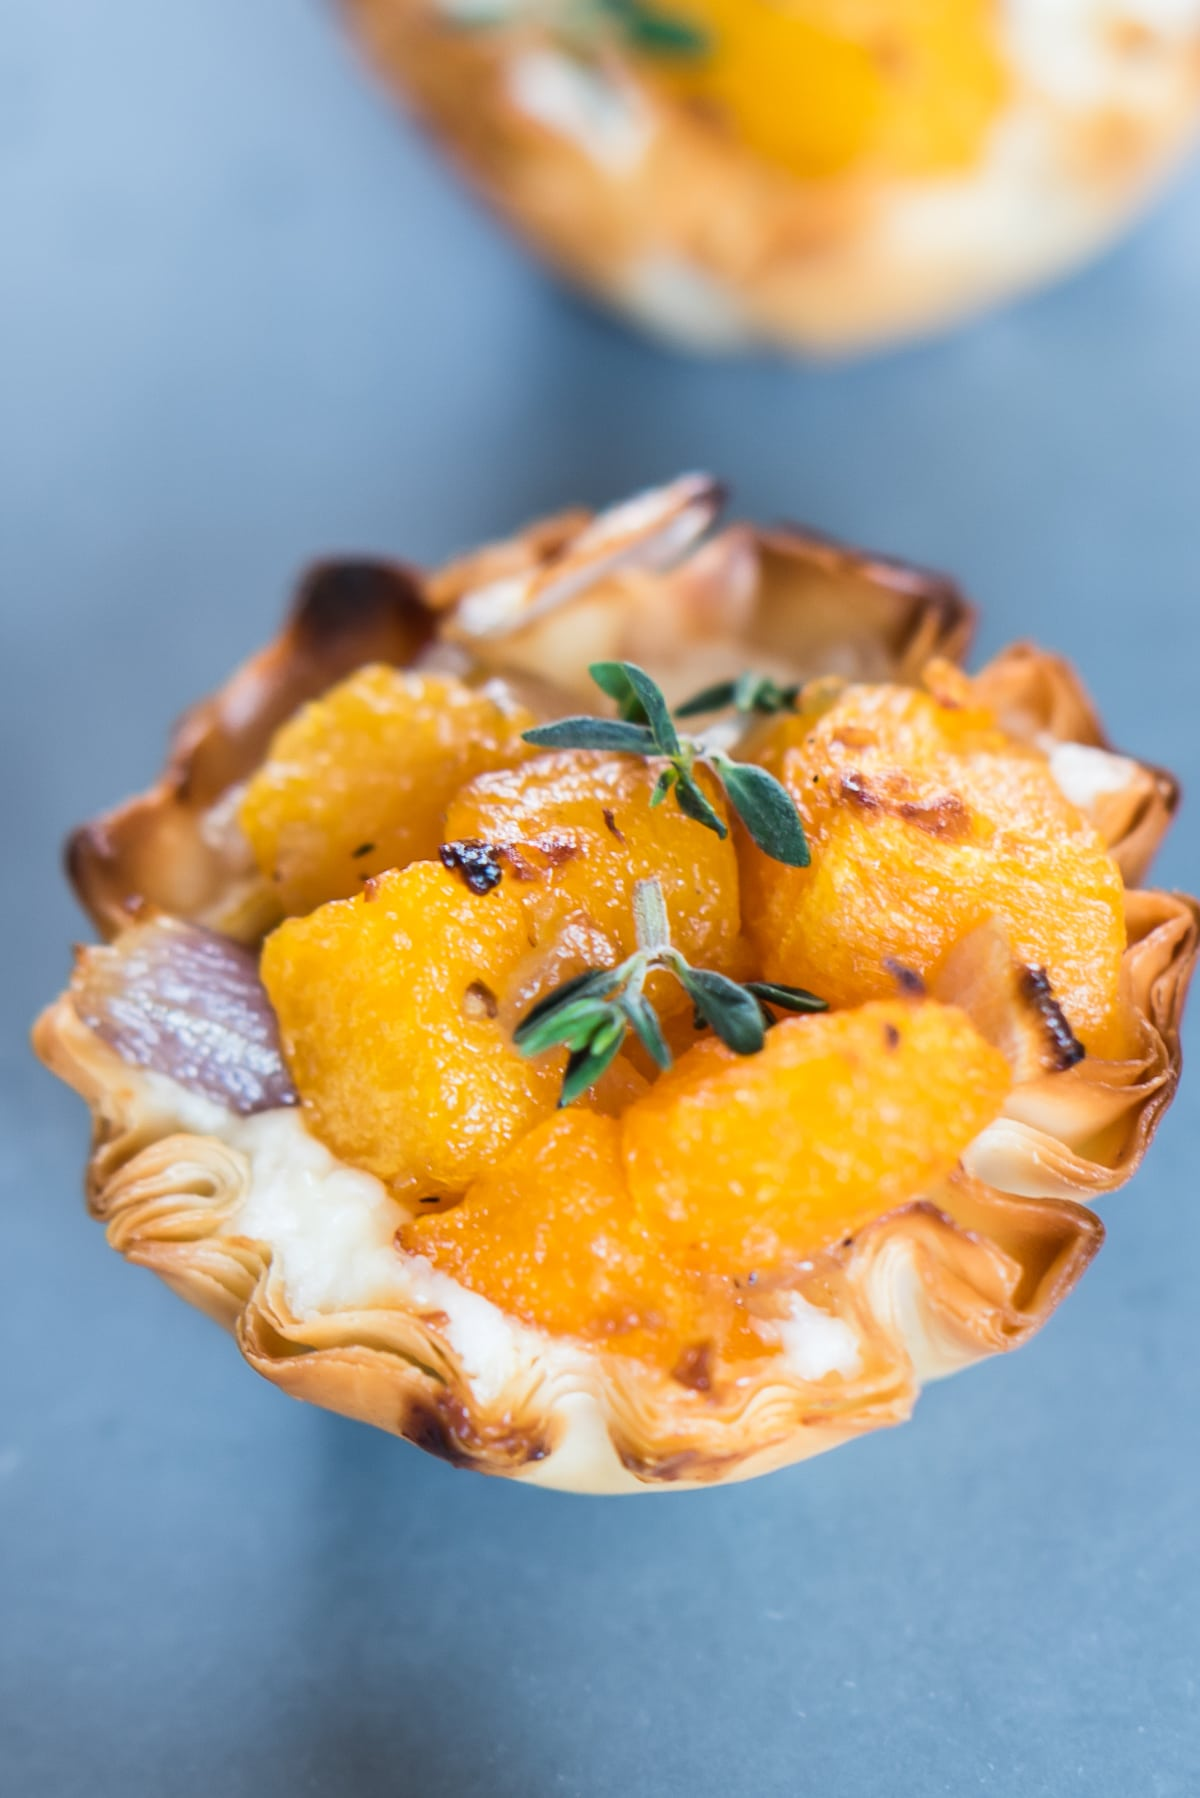 Butternut squash bites. The best holiday appetizer